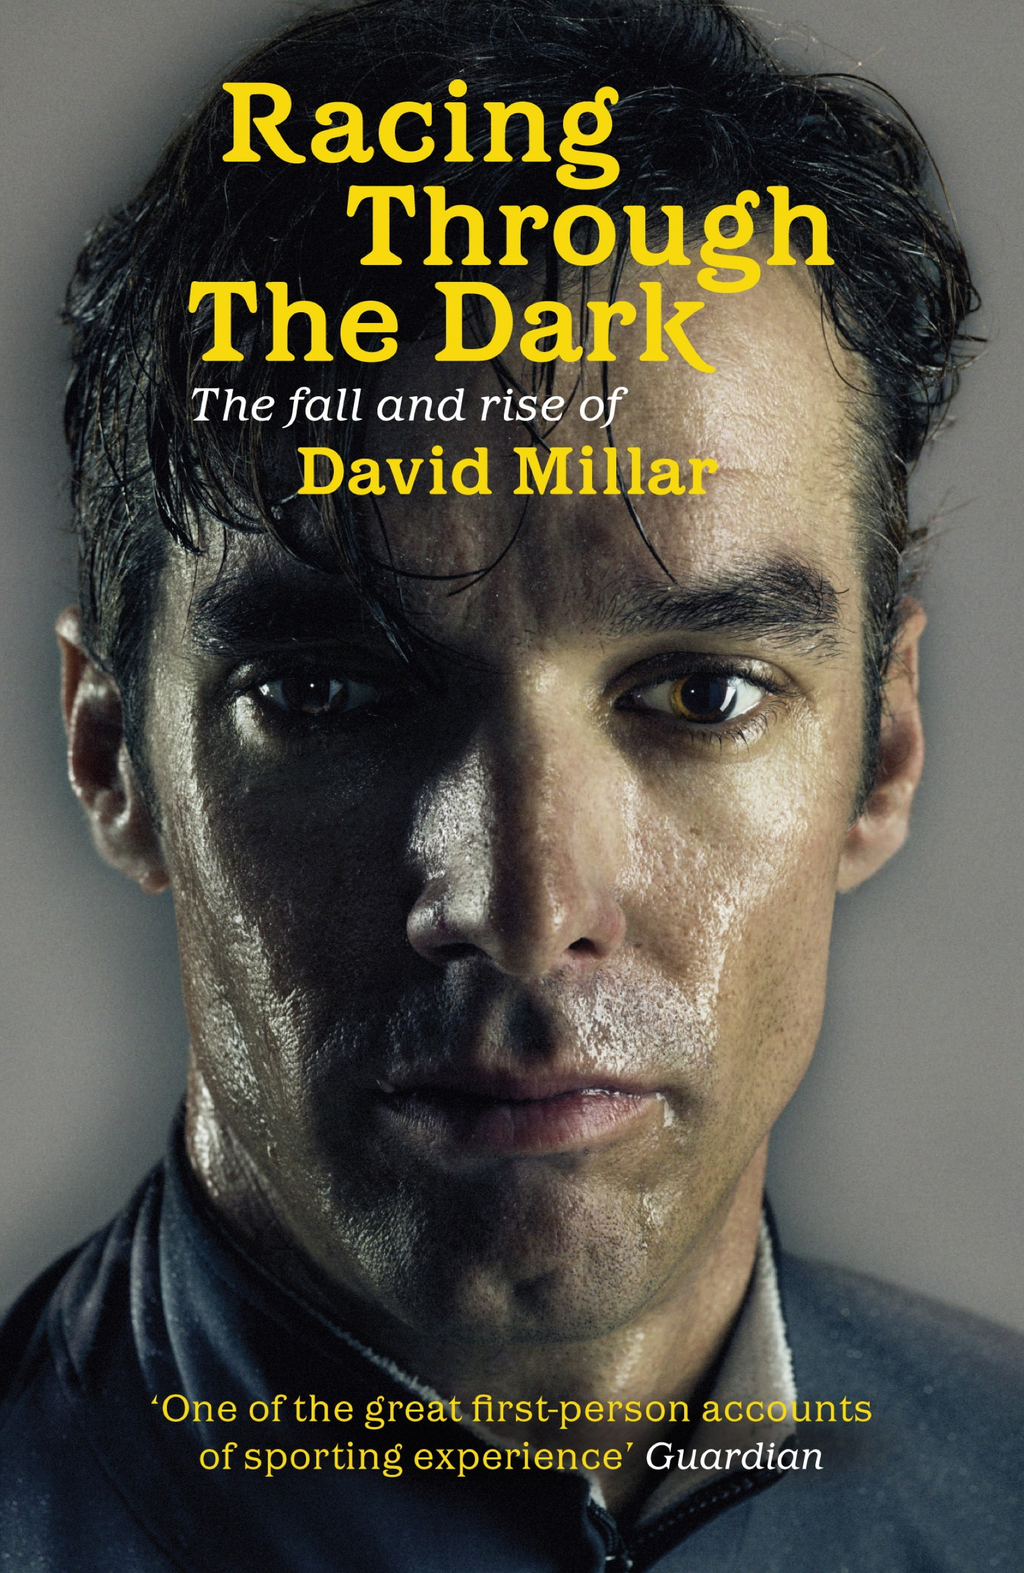 Racing Through the Dark The Fall and Rise of David Millar